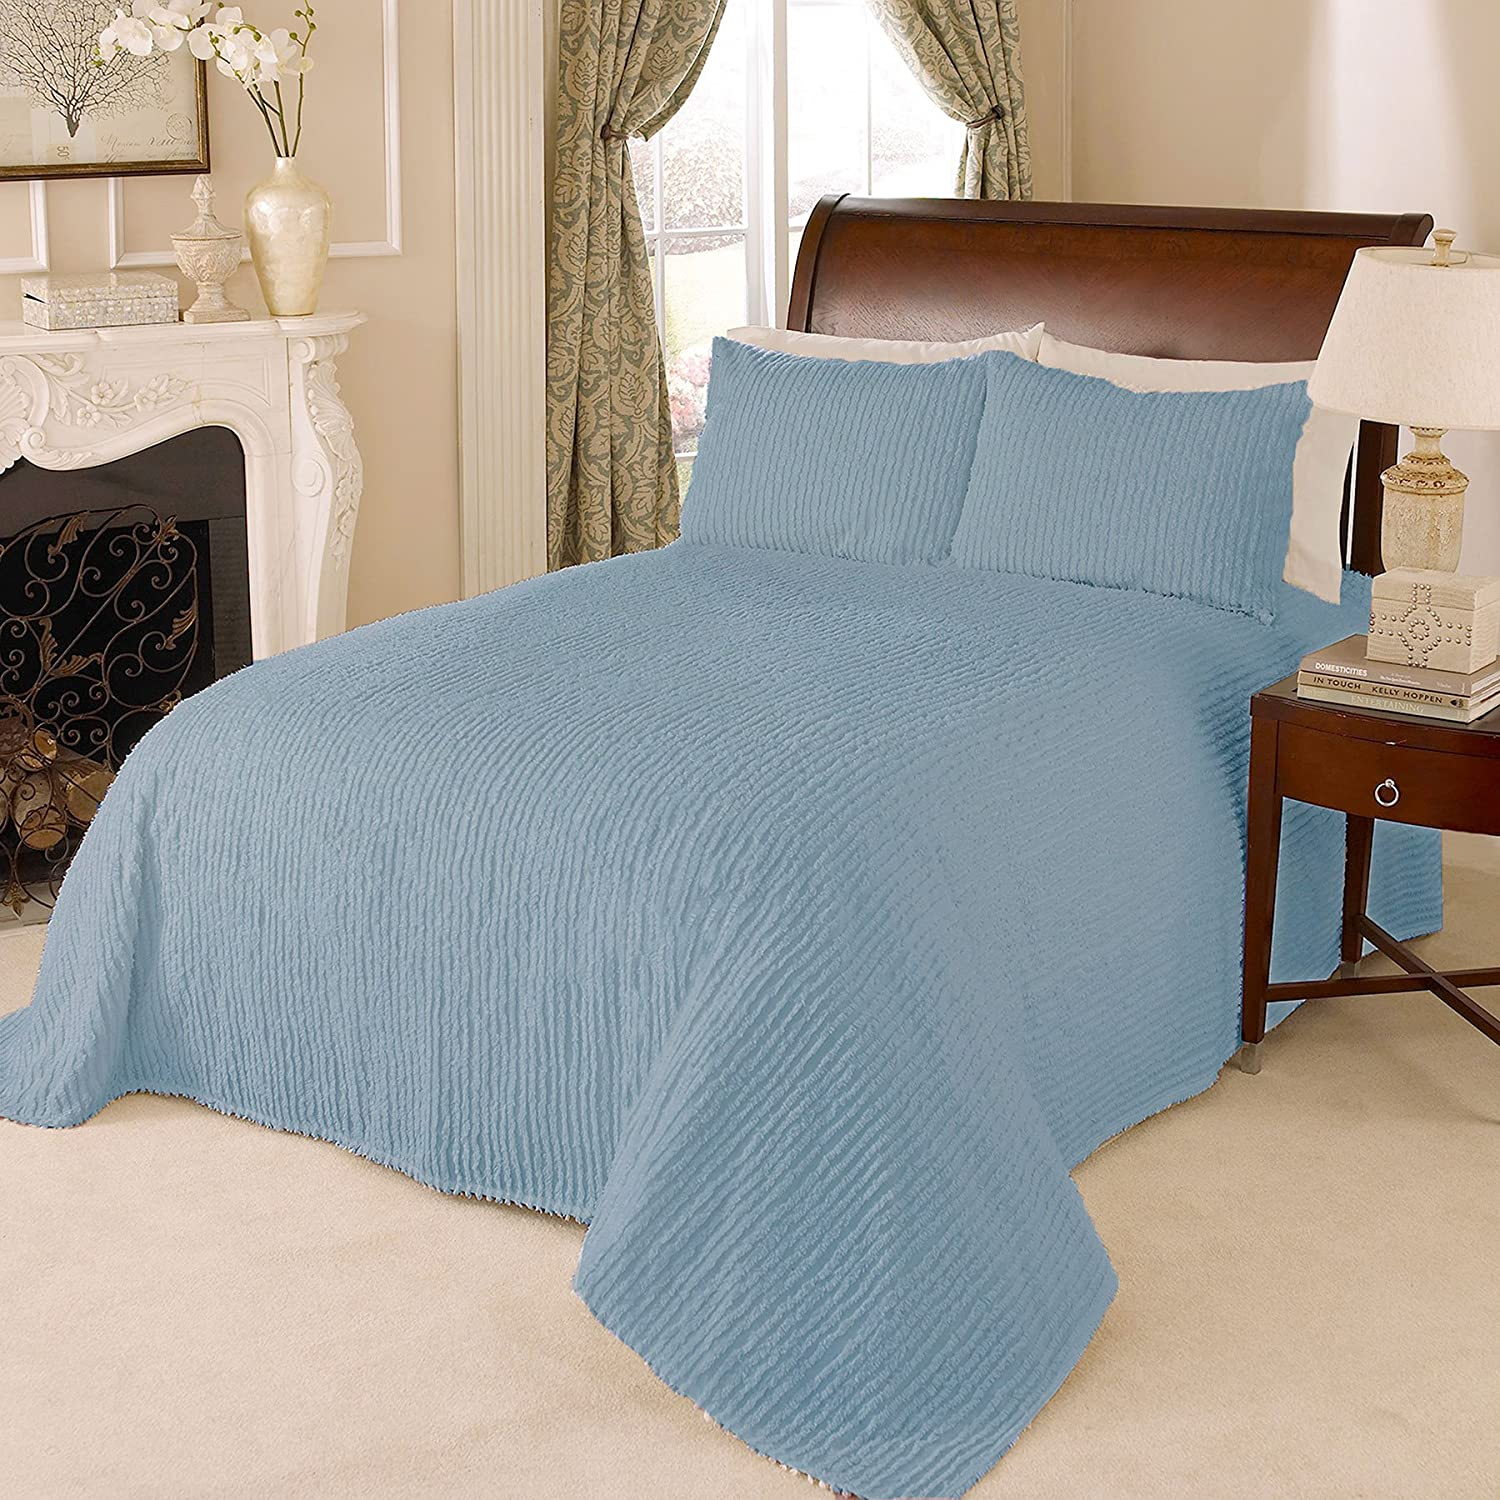 Beatrice Home Fashions Channel Chenille Bedspread, Twin, Blue